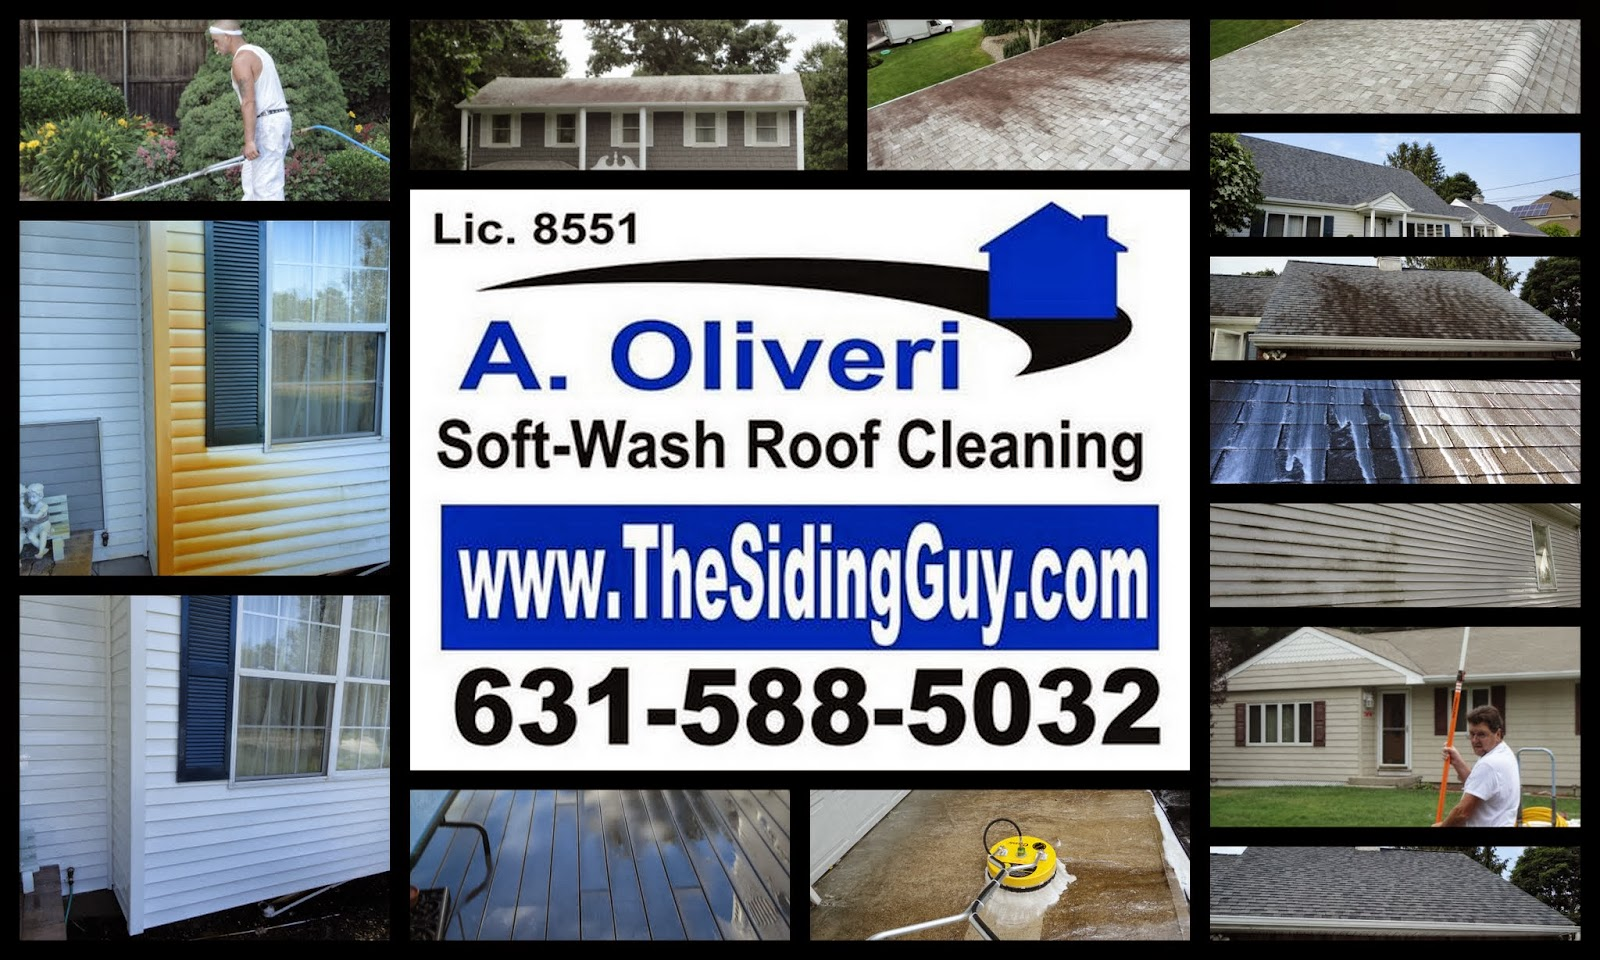 We Are Your Roof Cleaning Experts Of Long Island